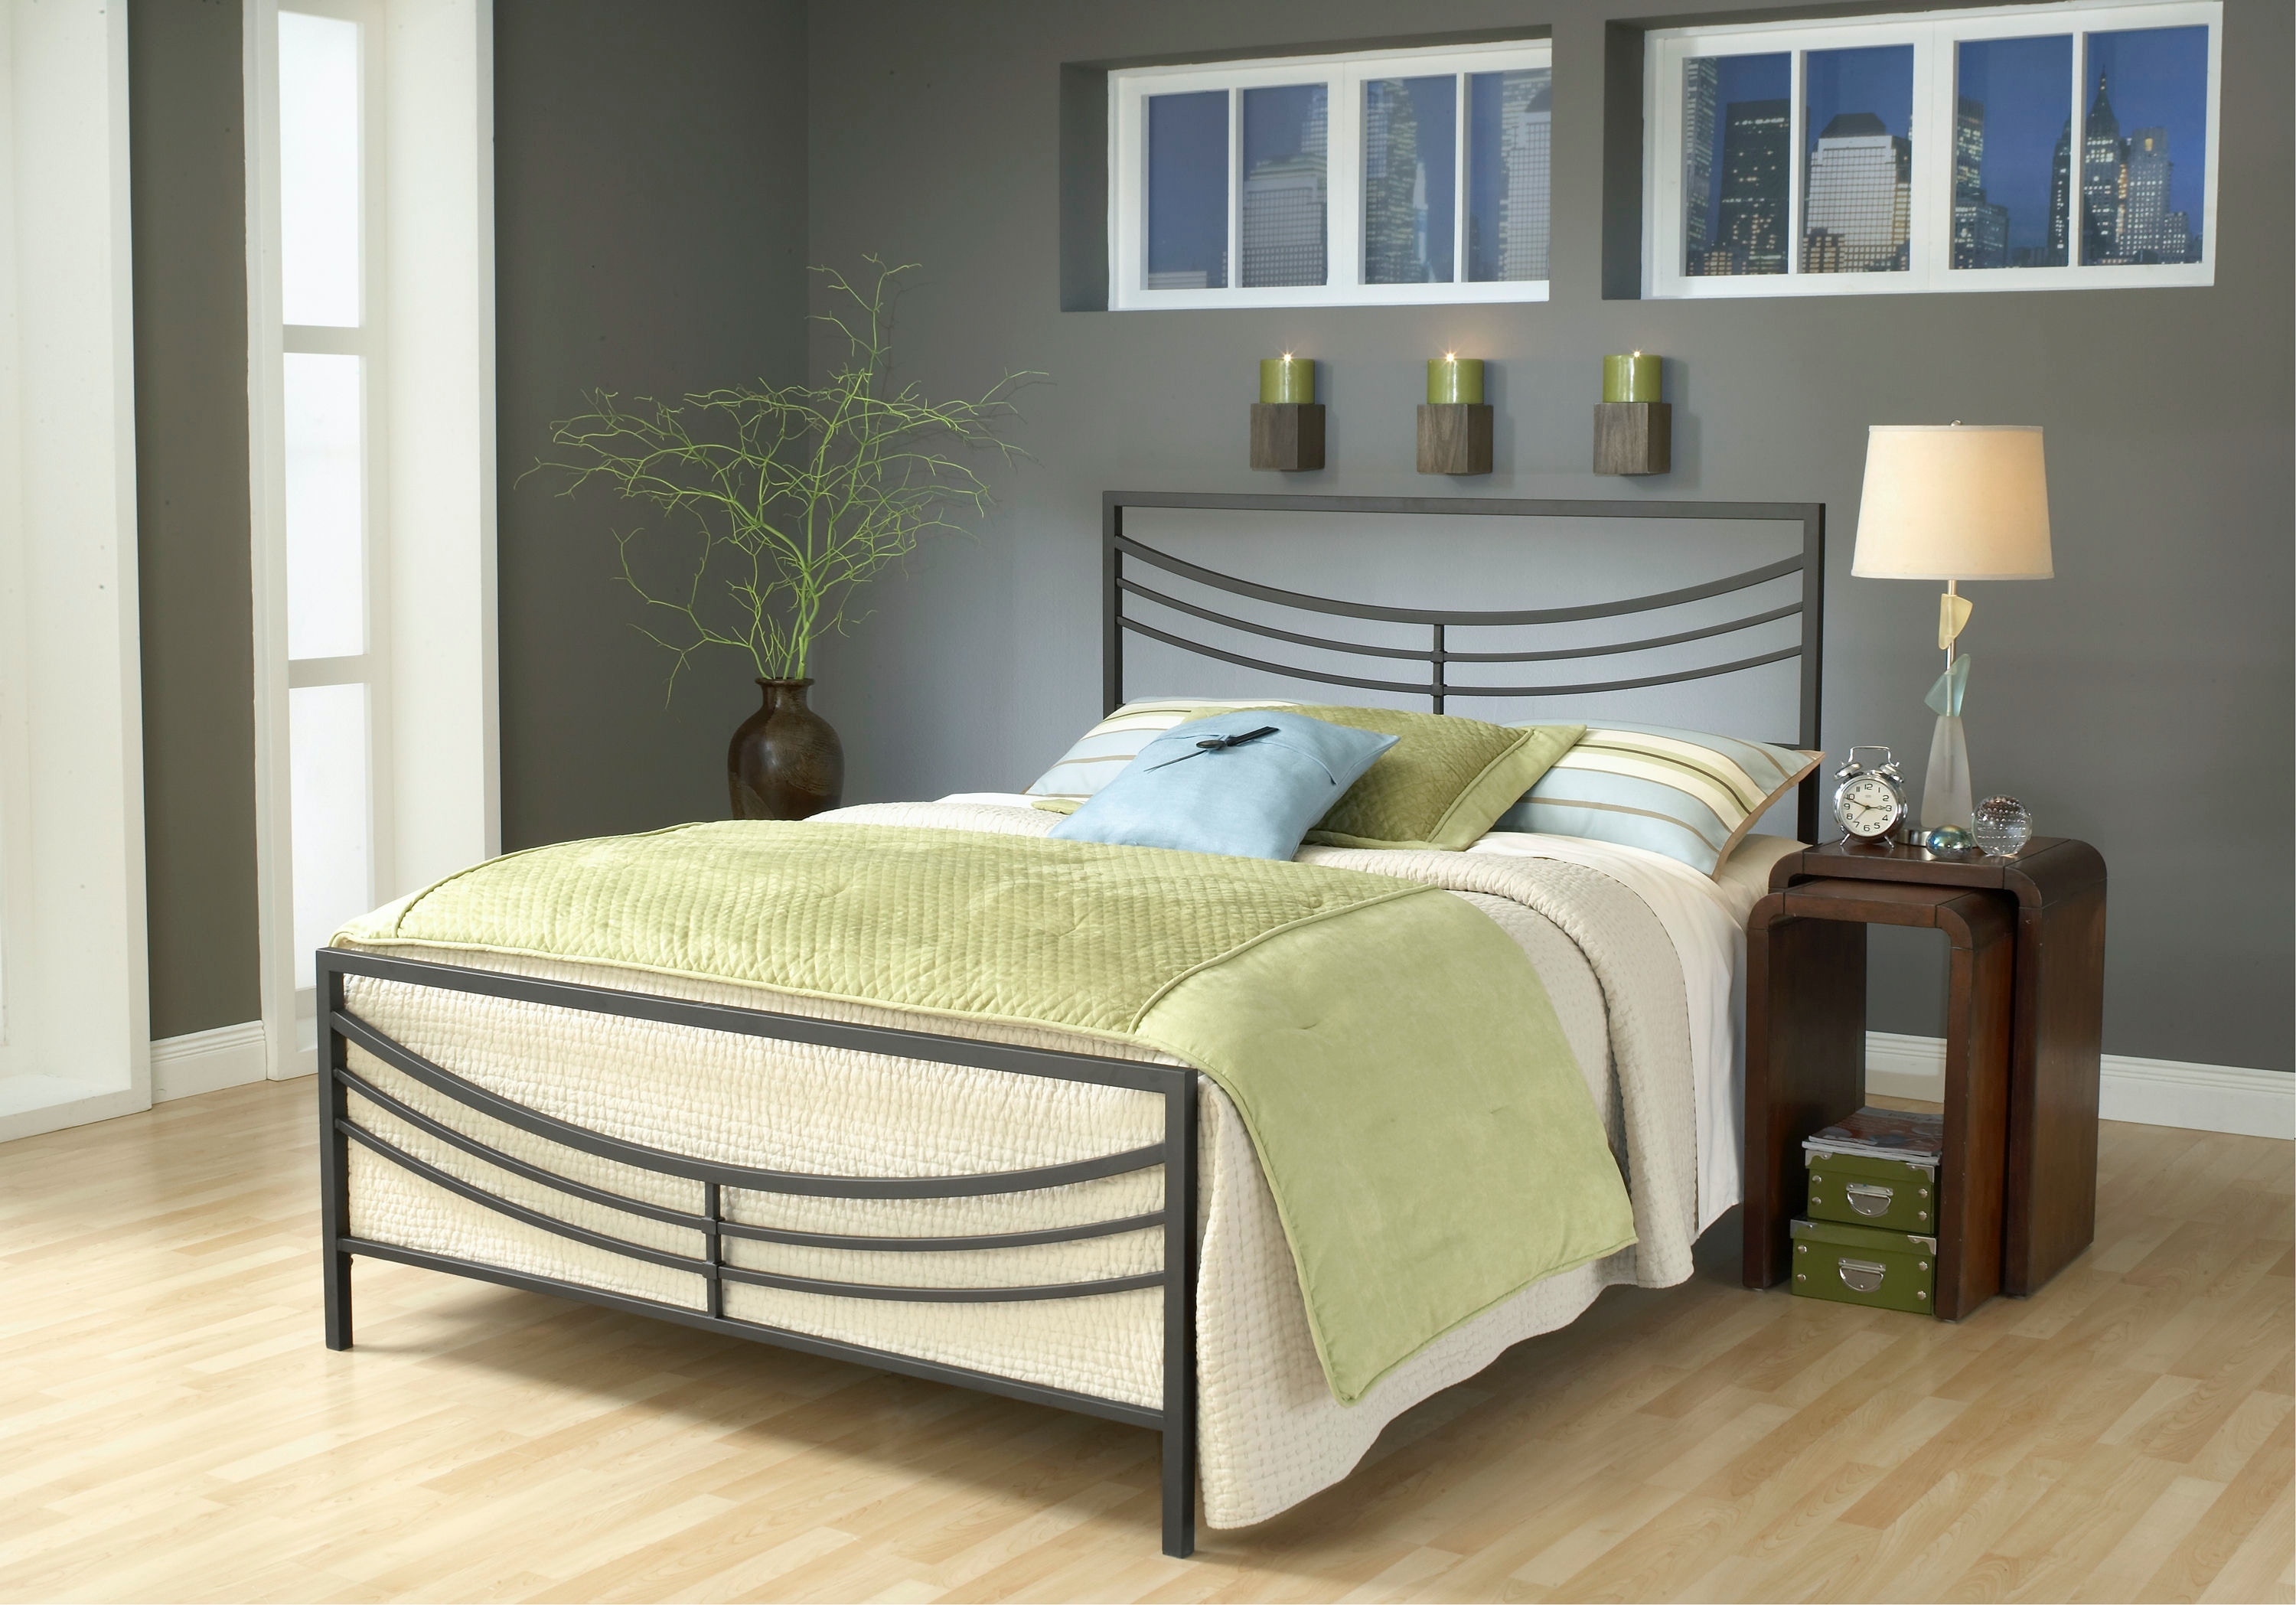 Hillsdale Furniture Kingston Bed Set   Queen   With Rails 1503BQR